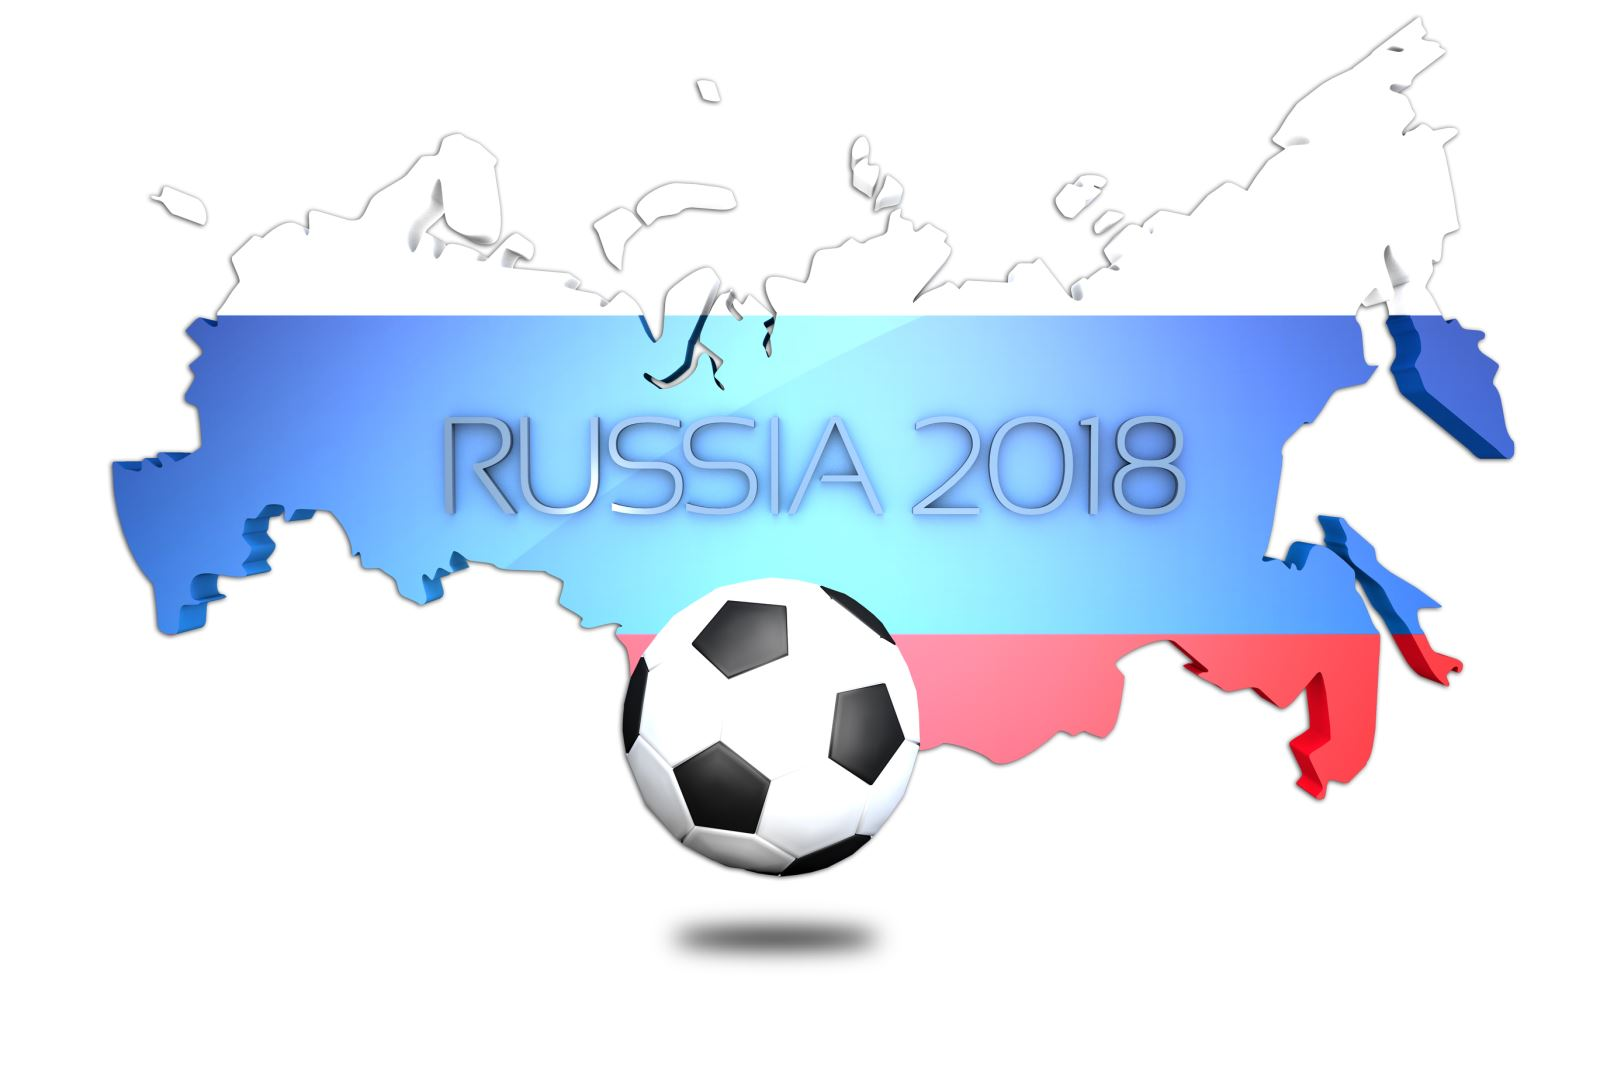 This year's World Cup is being held in locations across Russia